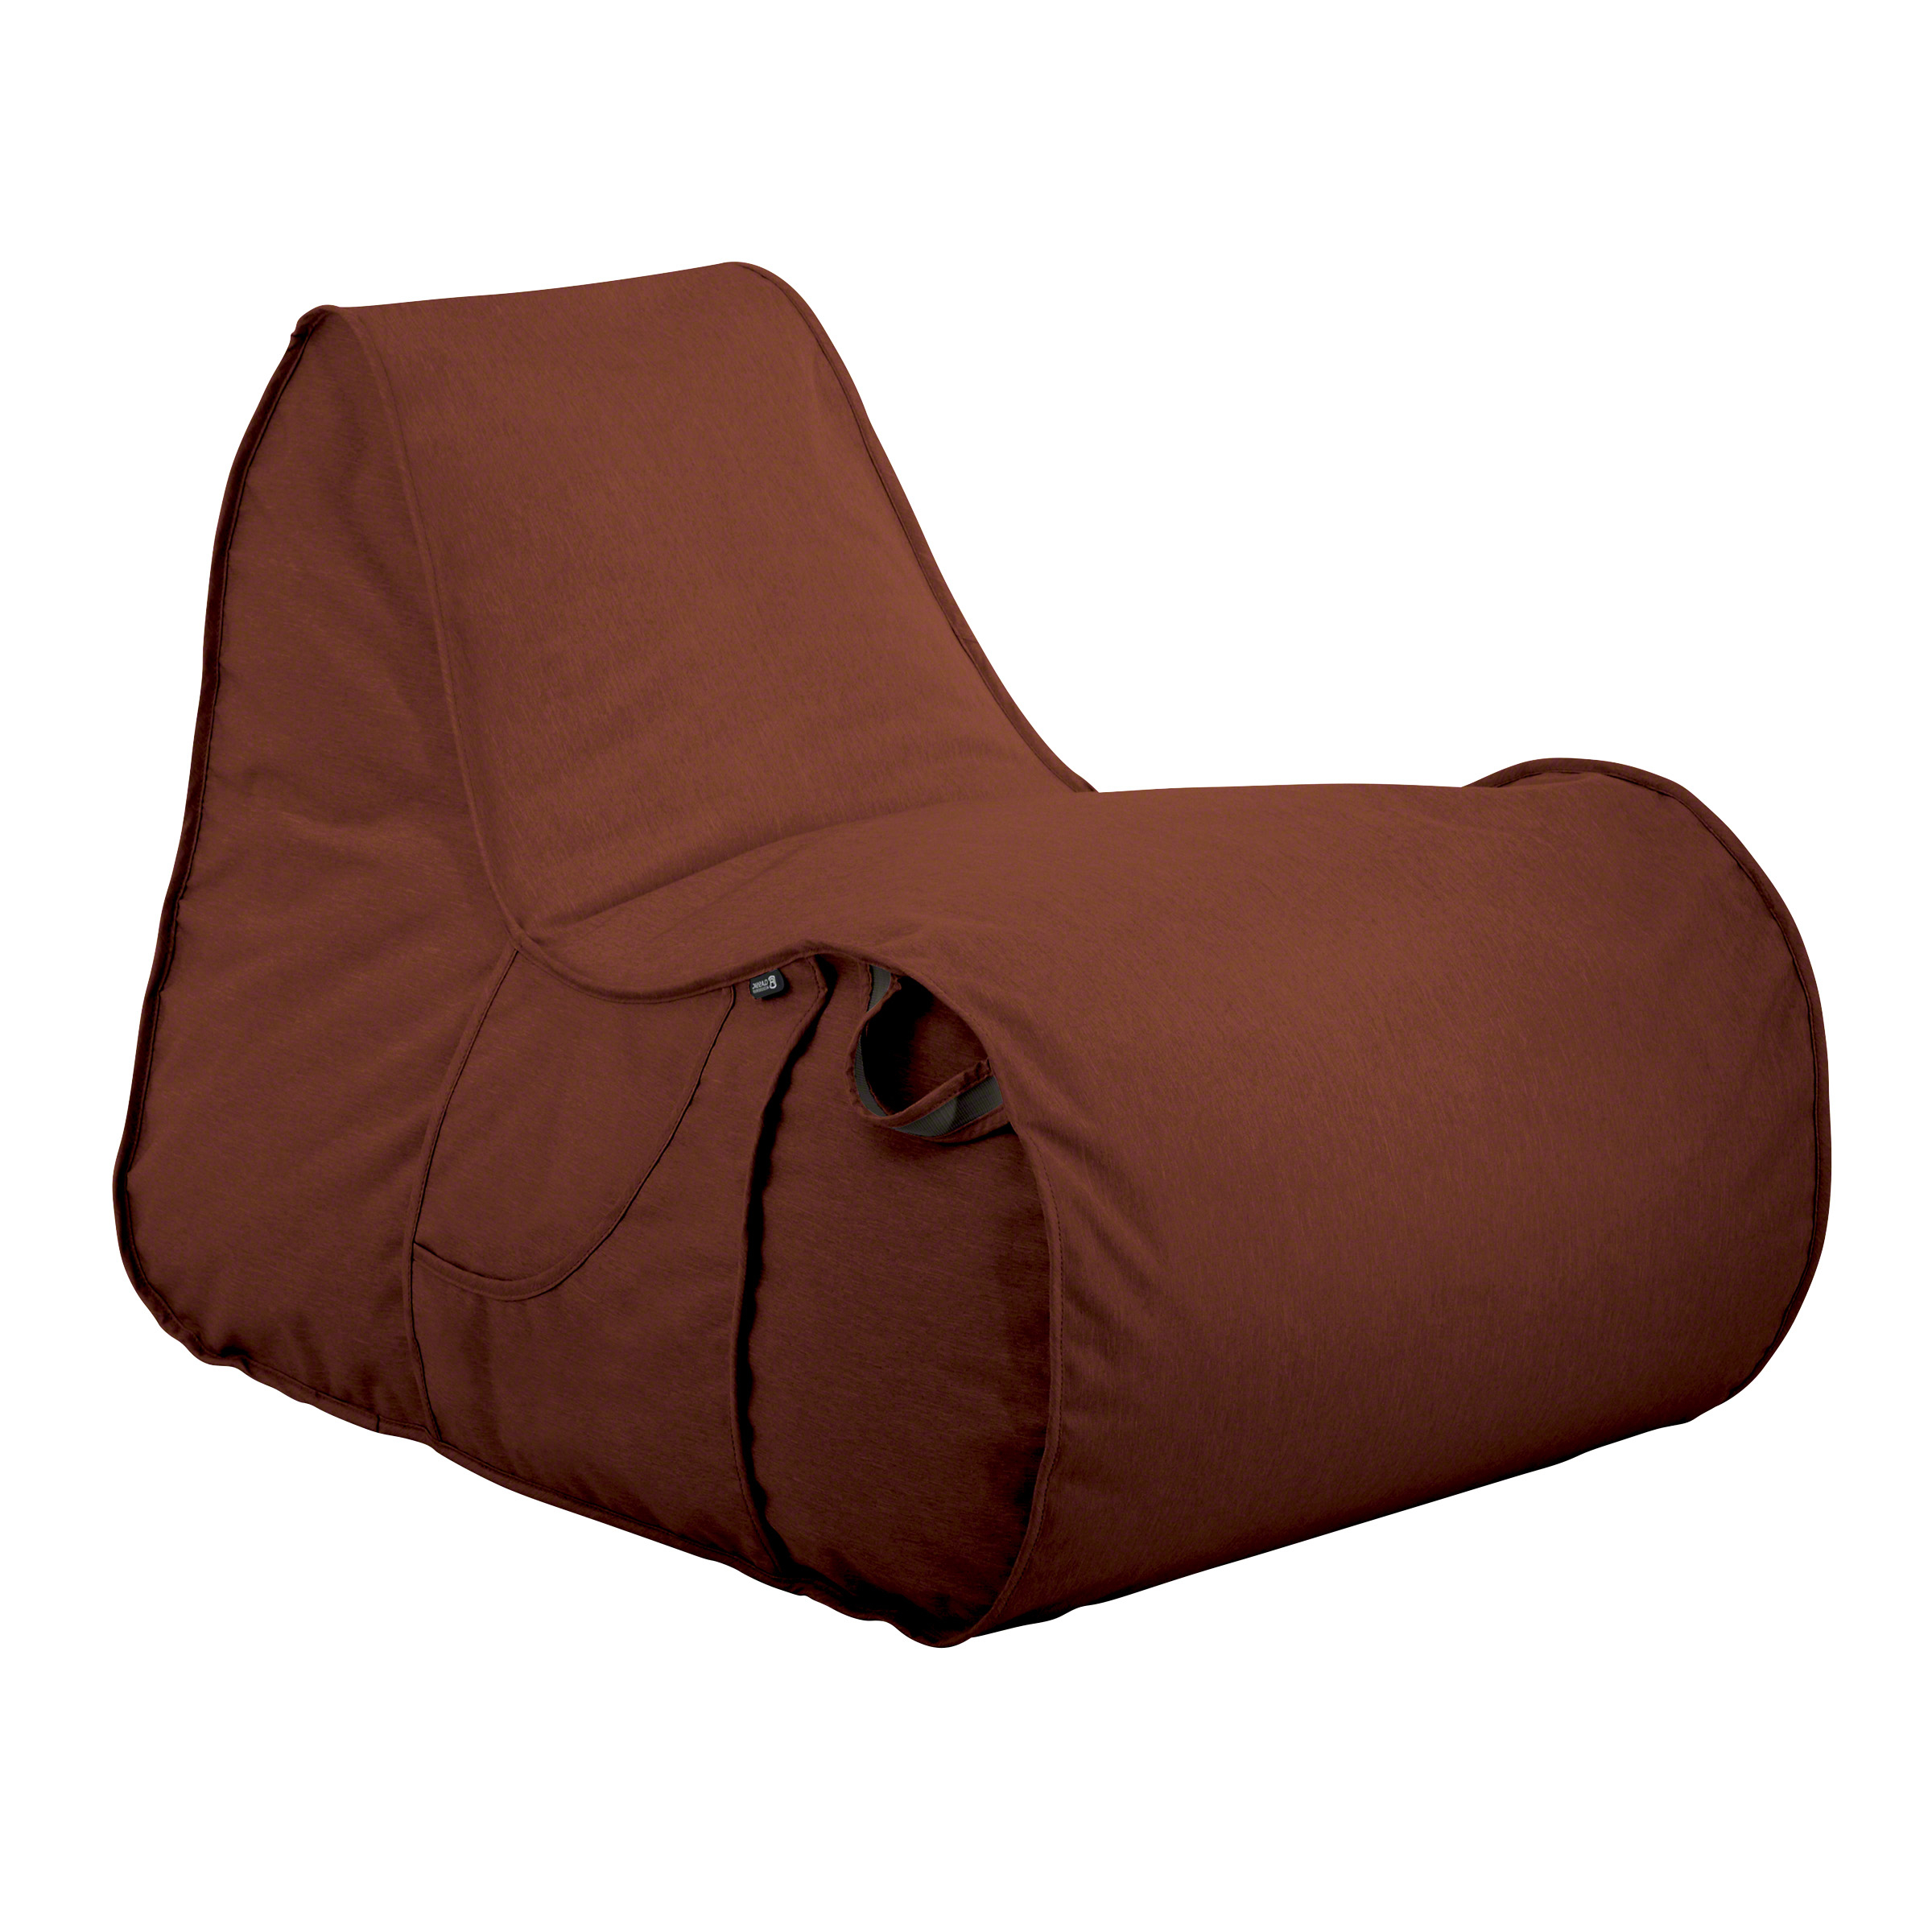 Indoor/outdoor Patio Bean Bag Chairs Pertaining To Newest Classic Accessories Montlake Fadesafe Frameless Furniture – Indoor/outdoor Bean Bag Patio Chair, Multiple Colors (View 11 of 25)